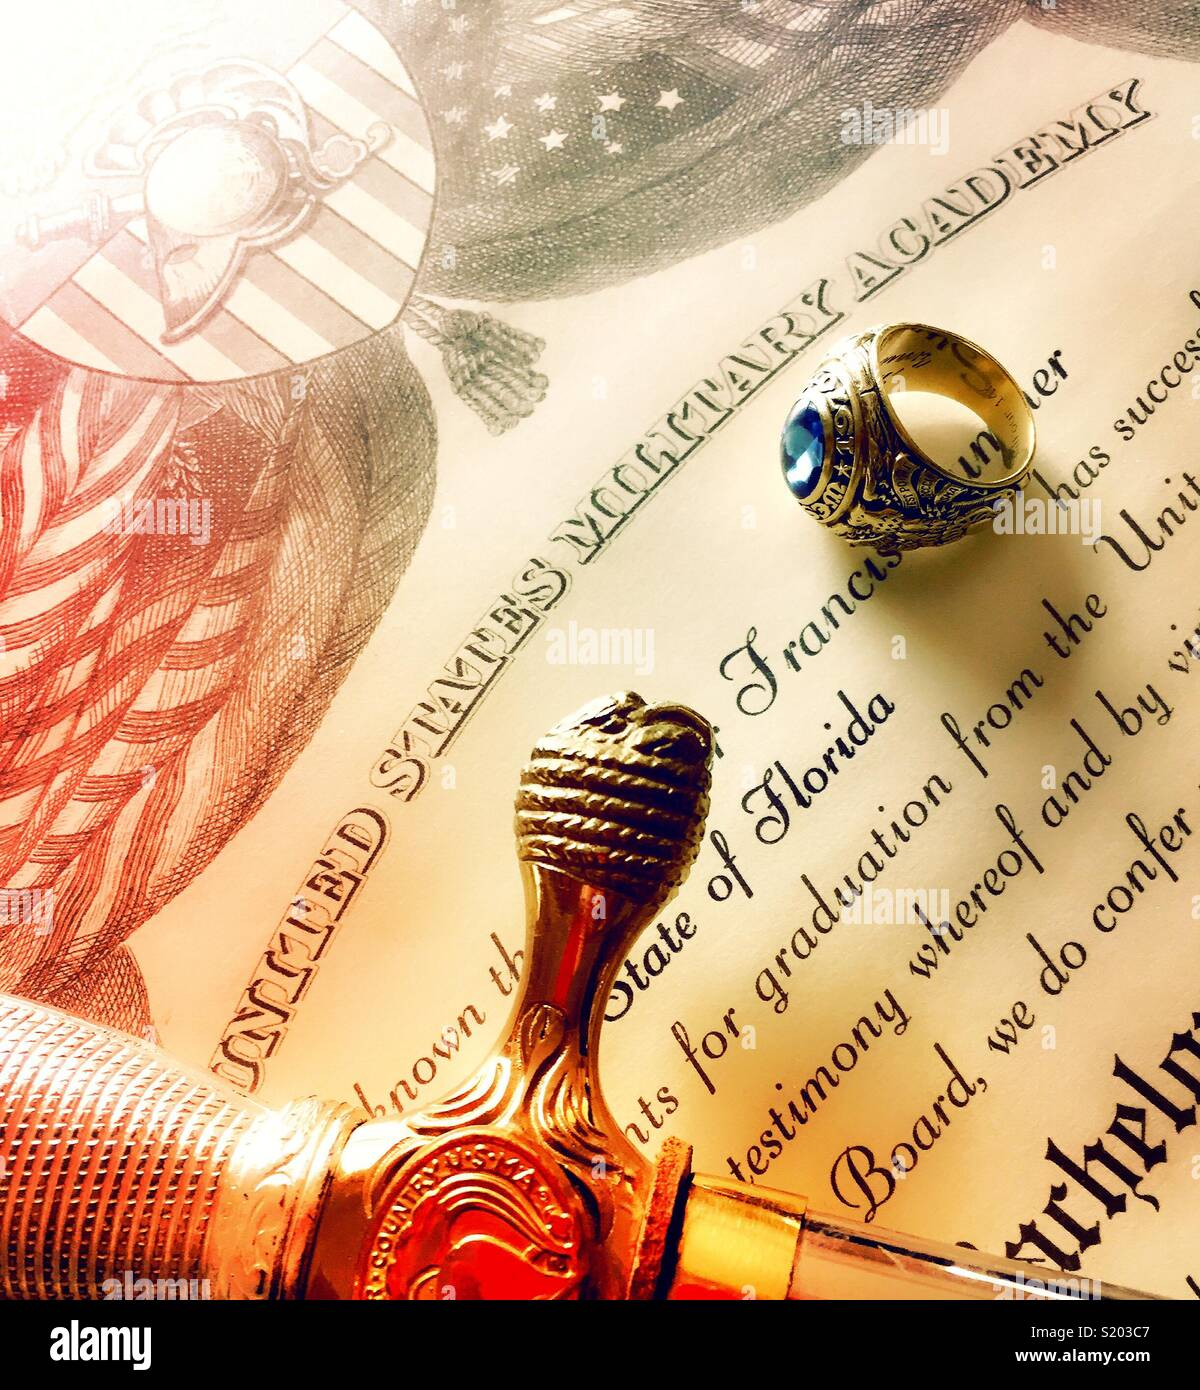 Ring and saber on west point diploma detail close-up, United States military Academy, USA - Stock Image